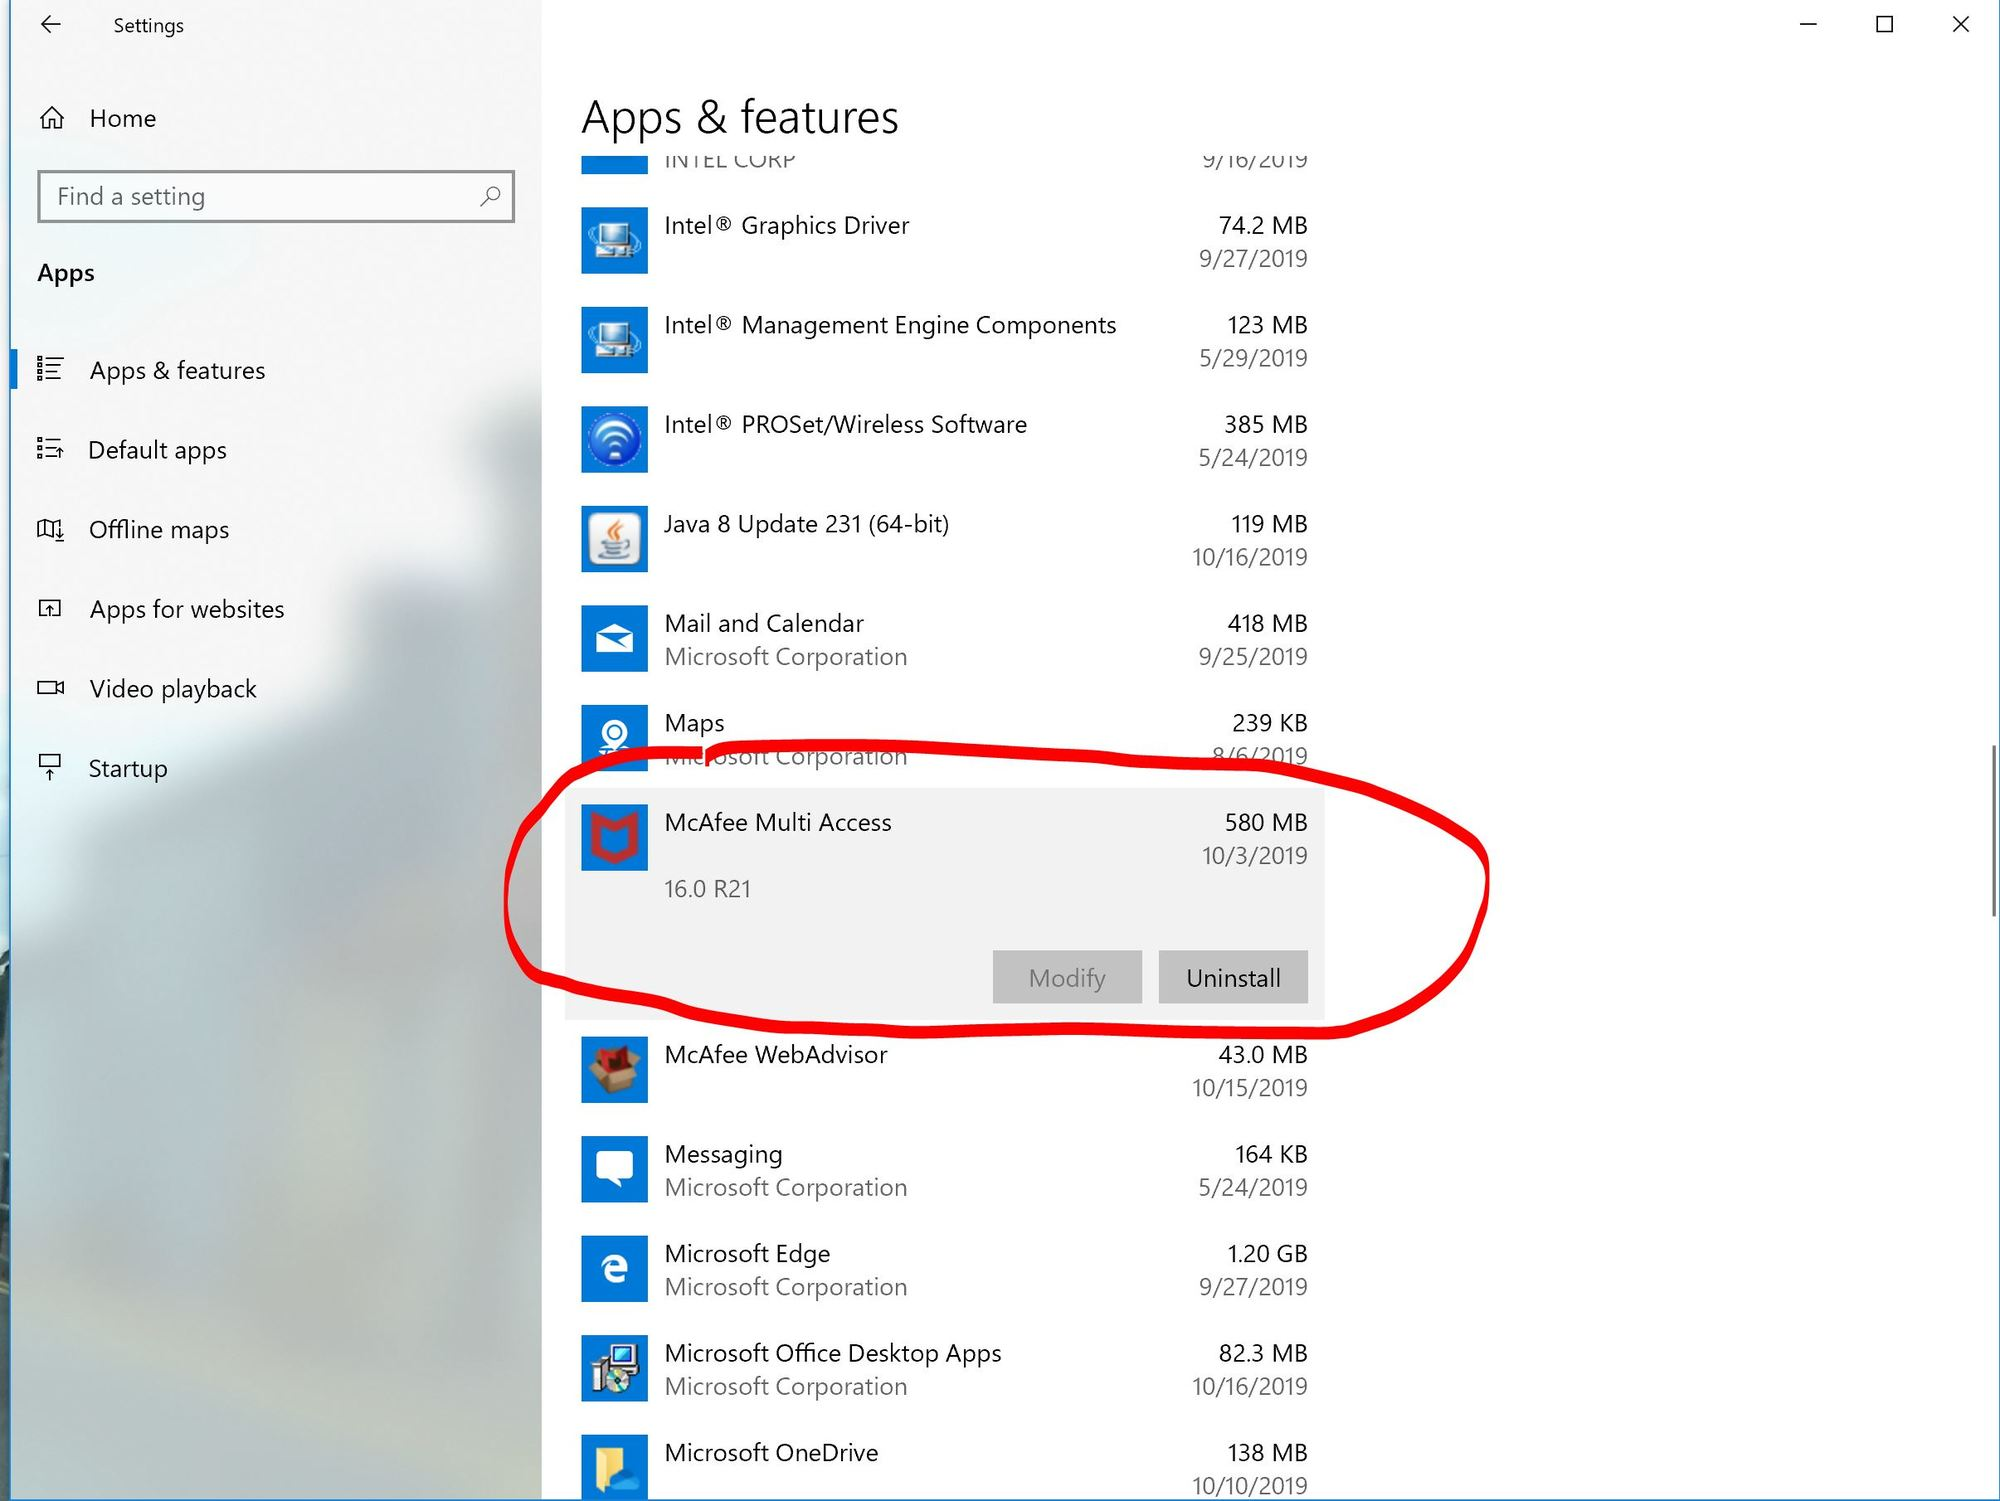 Windows Security - Showing TWO 2 Mcafee Apps in Settings Security since last Windows Update f97e930e-3550-4d7e-a8e9-35b7ac4b8e6d?upload=true.jpg